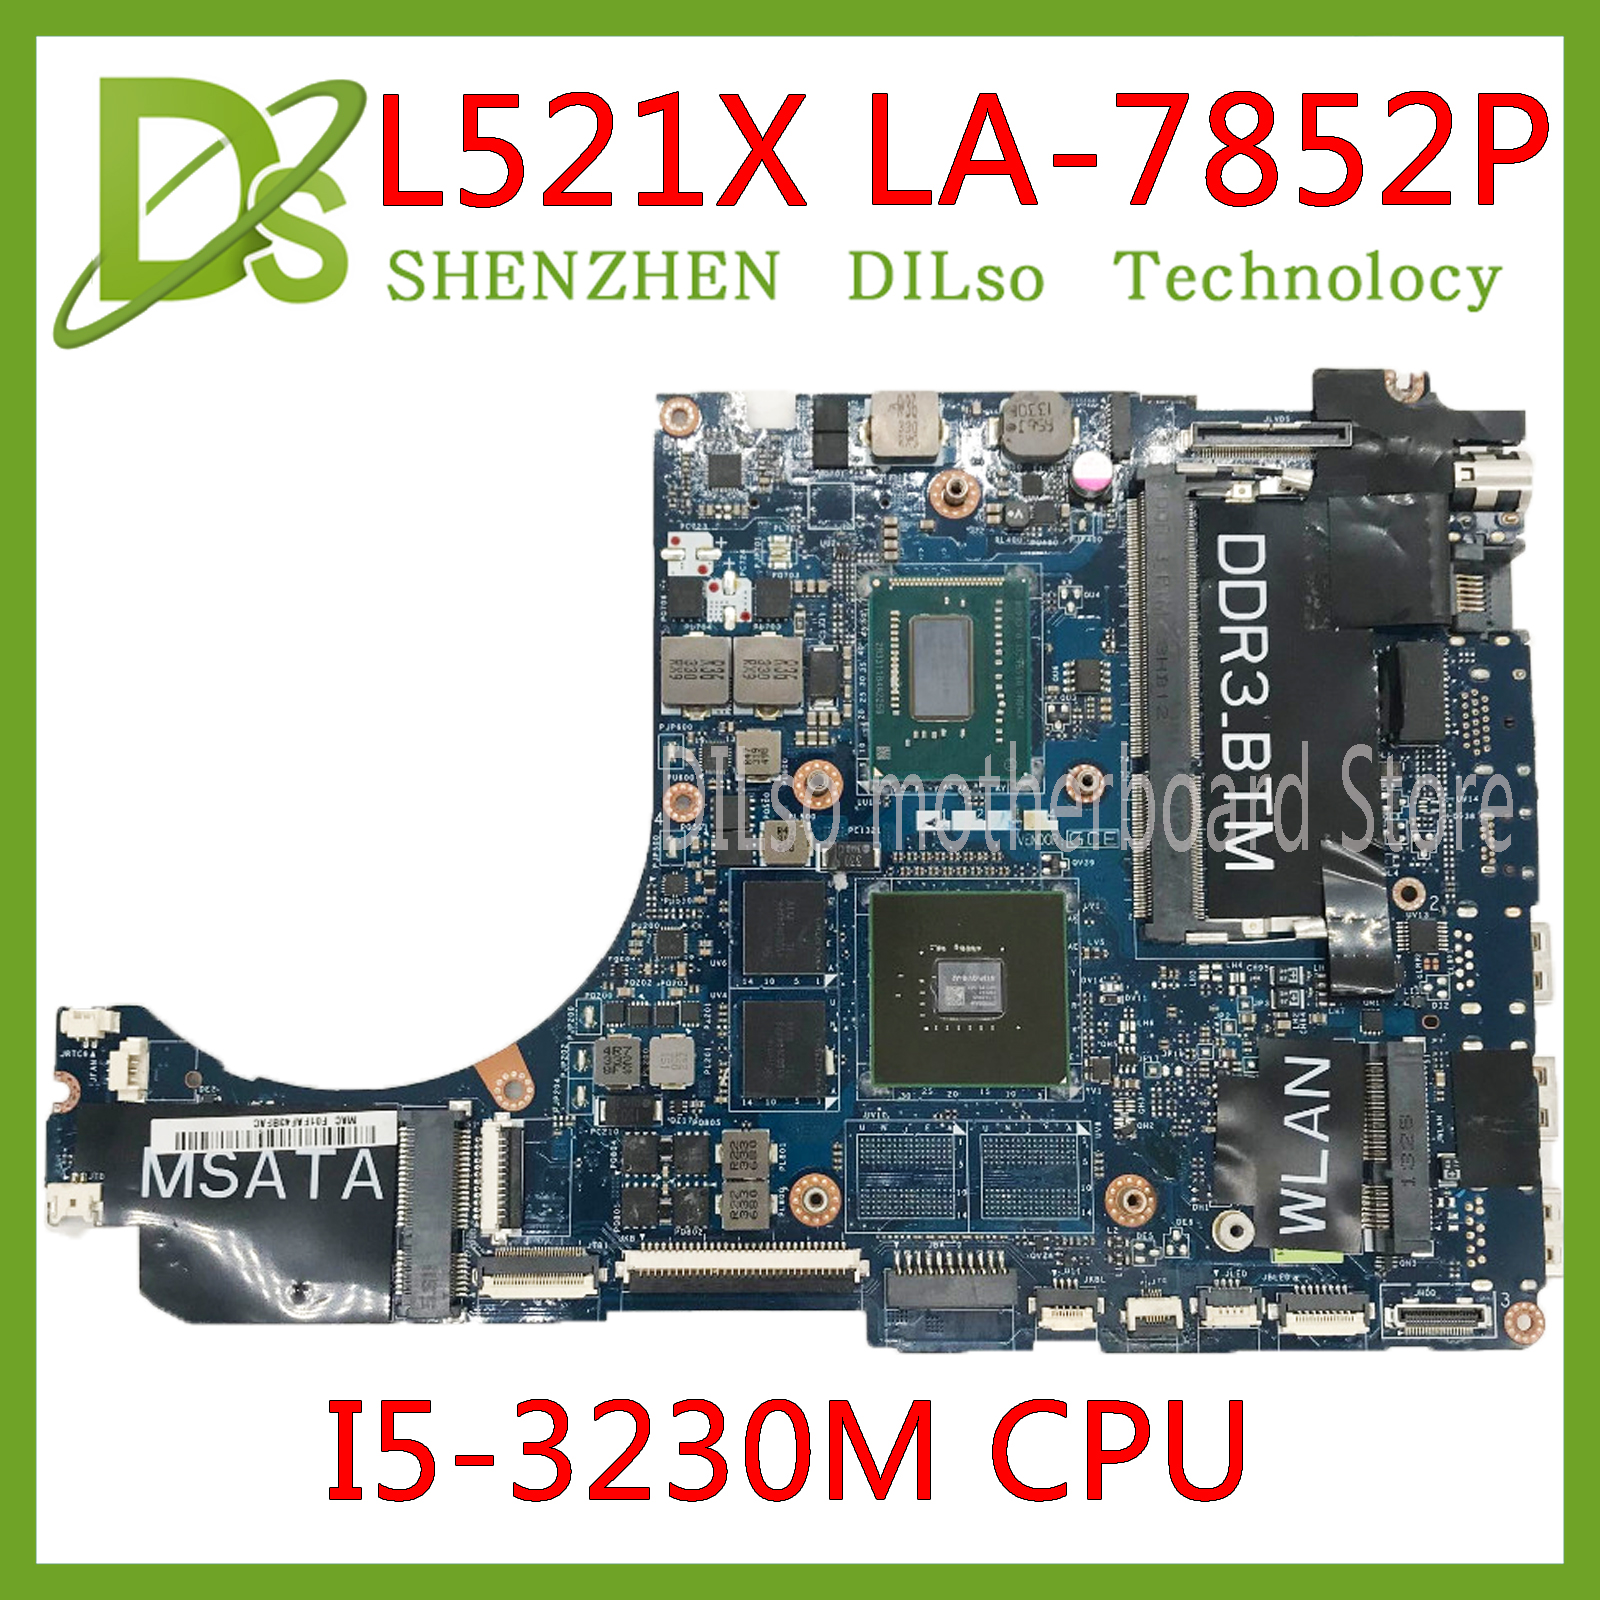 KEFU QBL00 LA-7851P motherboard FOR Dell XPS 15 L521X <font><b>Laptop</b></font> Motherboard <font><b>I5</b></font>-<font><b>3230M</b></font> DDR3L 4 video chips Fully Tested 100% work image